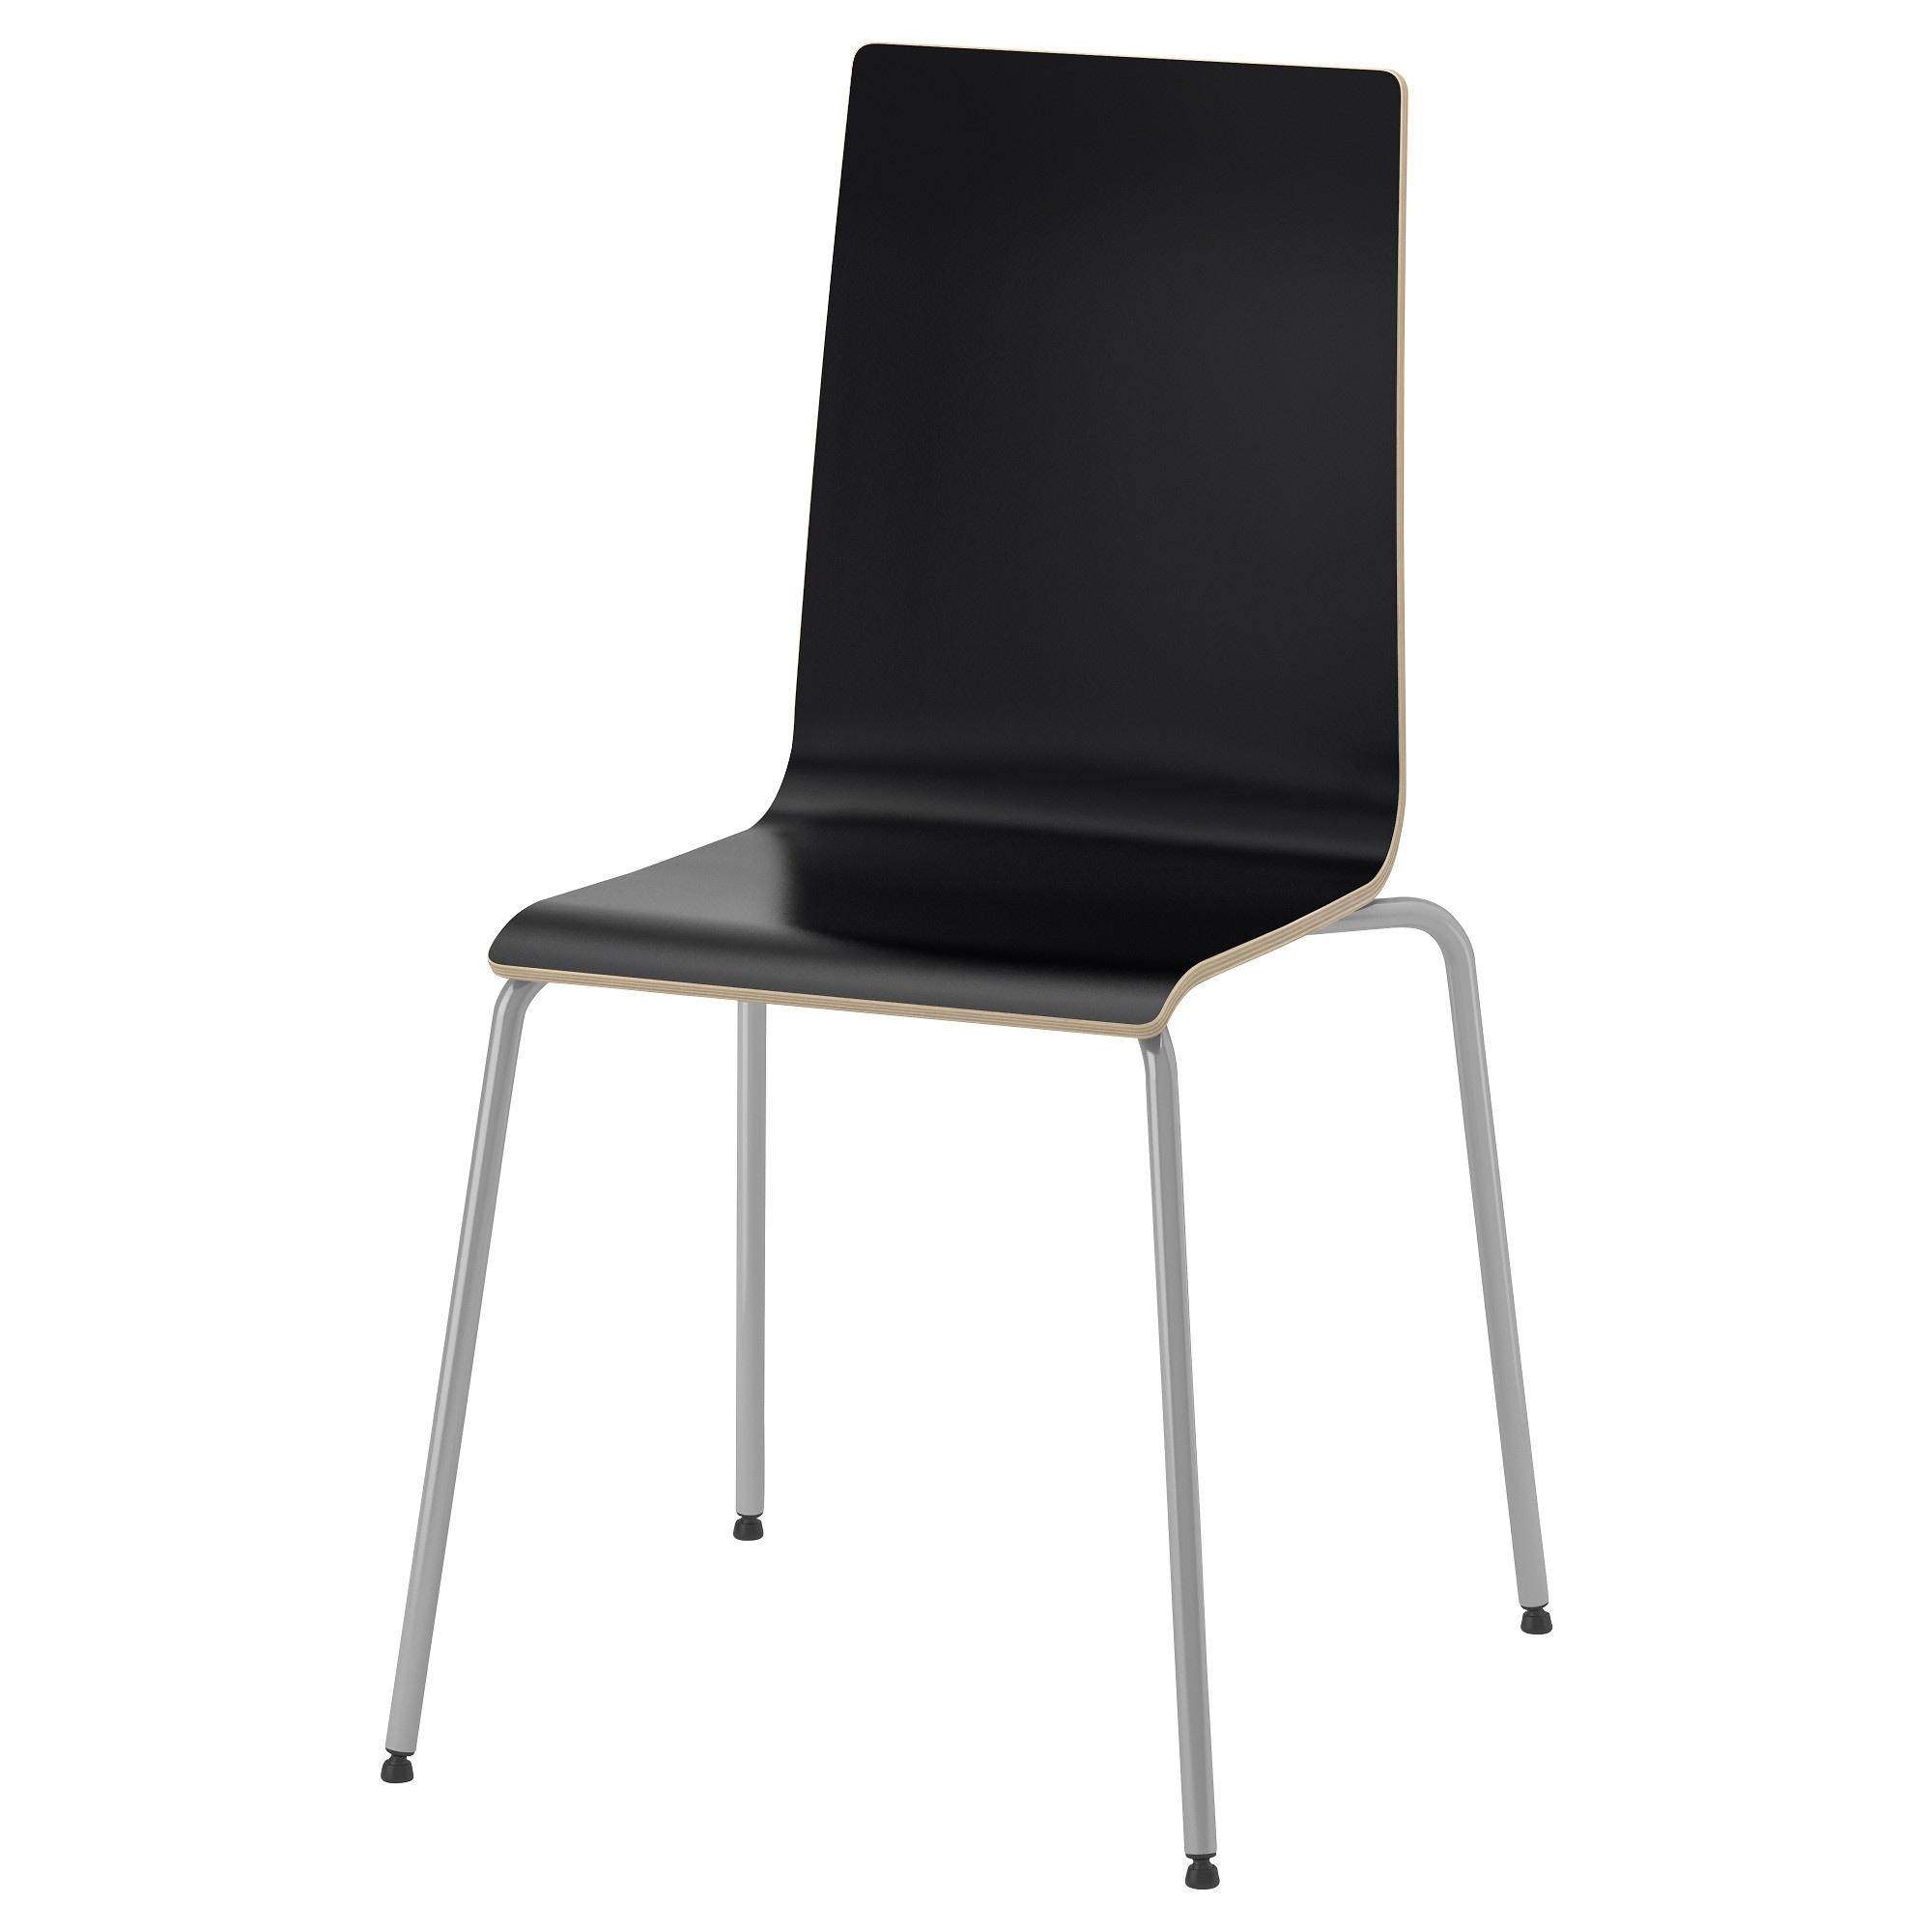 Dining Chairs Dining Chair Underframes  Seat Shells IKEA -  black and white chairs